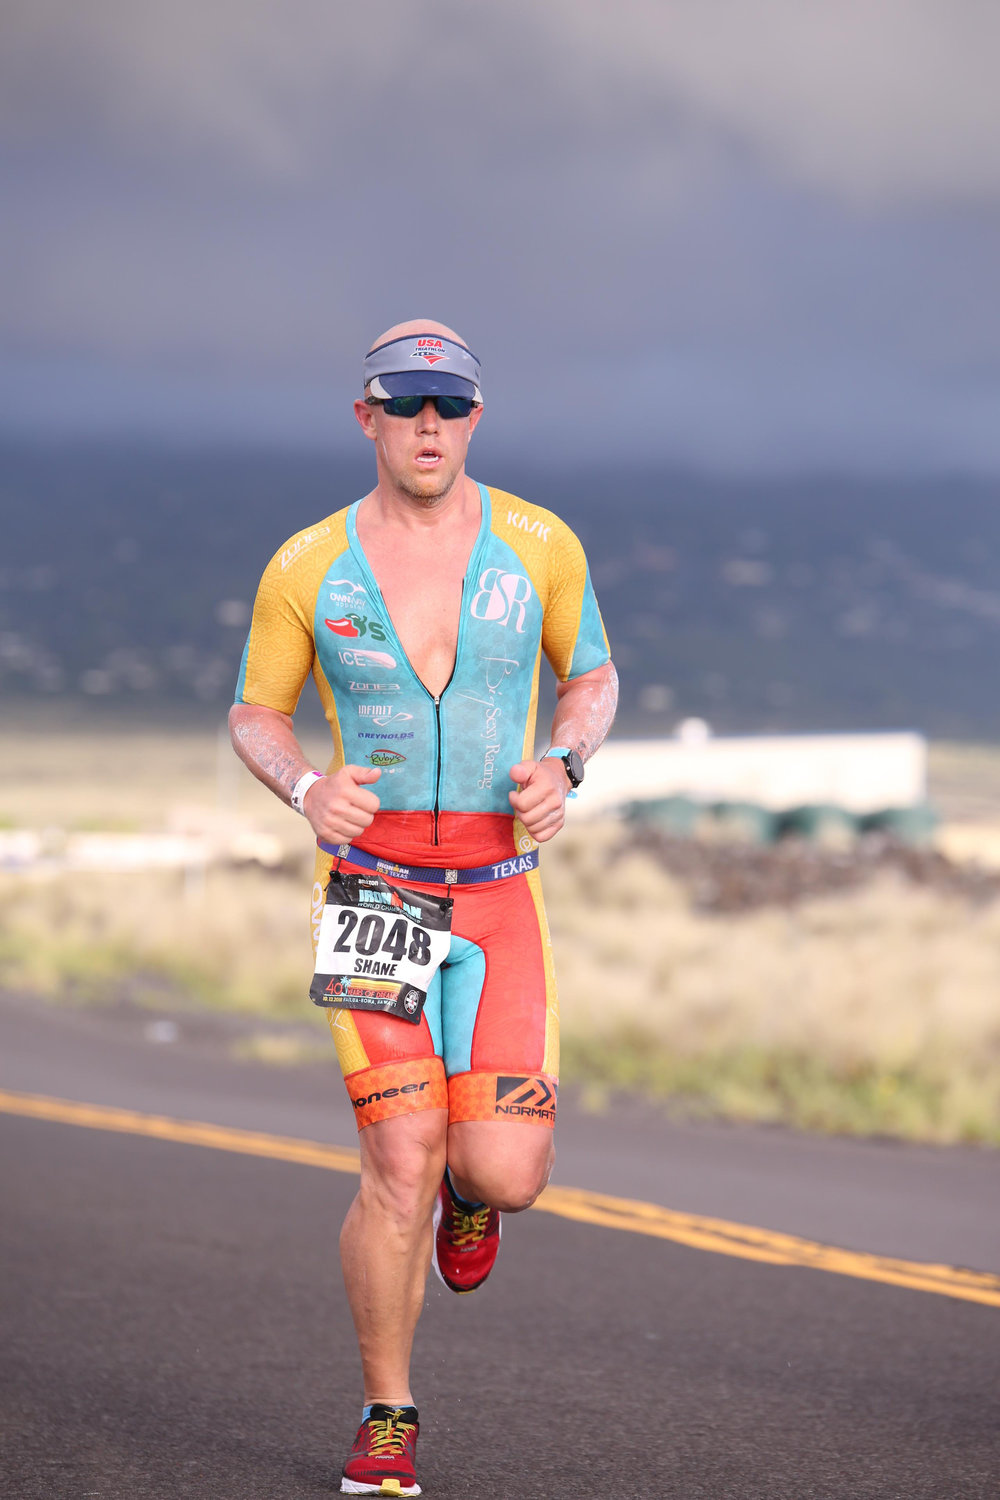 Coach_Terry_Wilson_Pursuit_of_The_Perfect_Race_IRONMAN_World_Championship_Kona_Shane_Peed_5.JPG